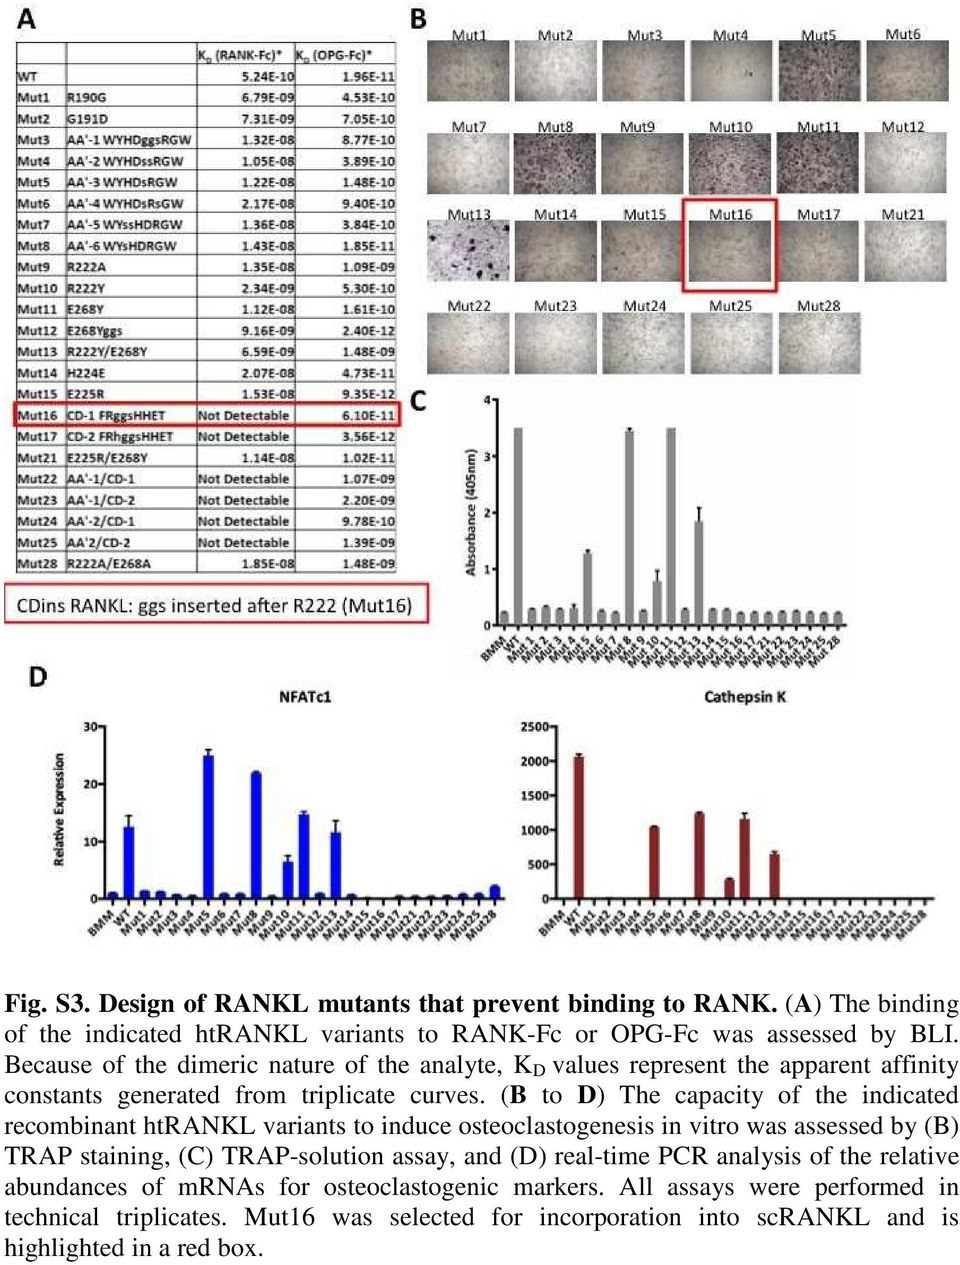 (B to D) The capacity of the indicated recombinant htrankl variants to induce osteoclastogenesis in vitro was assessed by (B) TRAP staining, (C) TRAP-solution assay, and